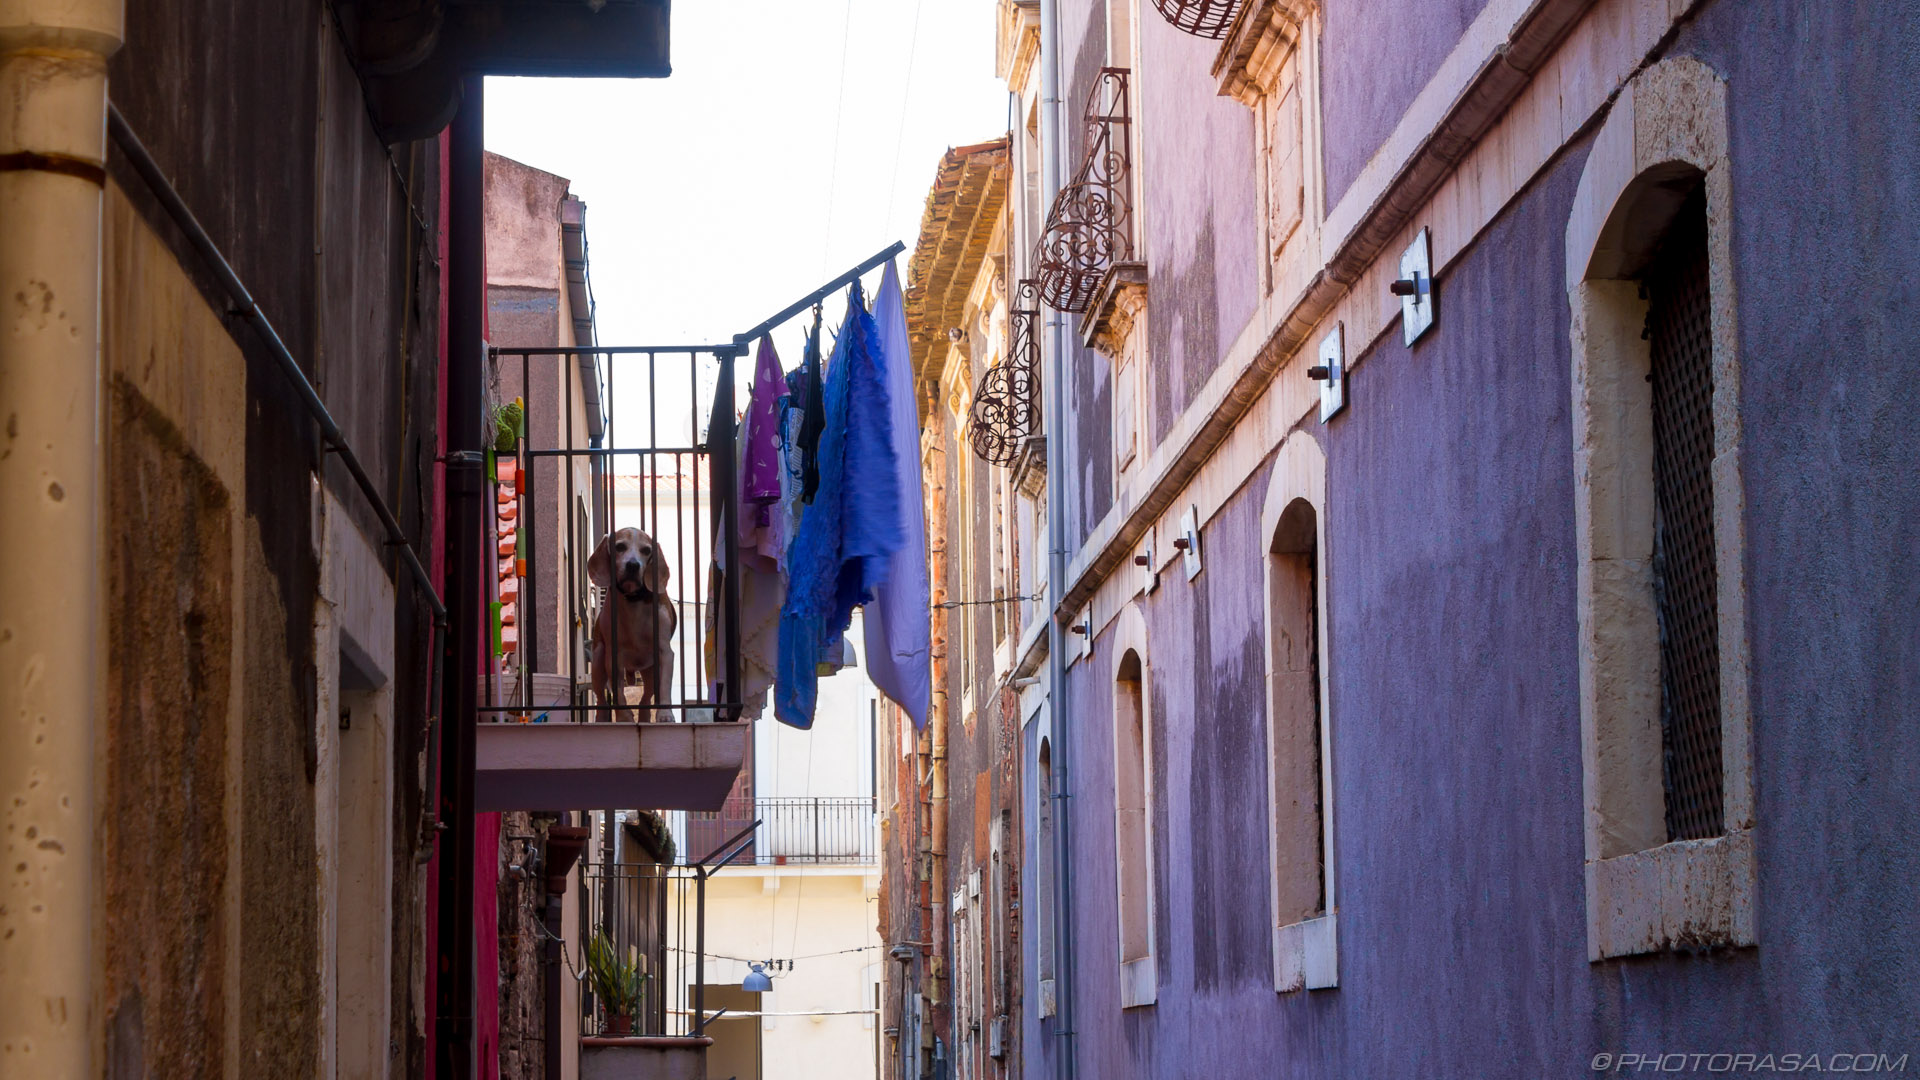 https://photorasa.com/catania/dog-on-a-balcony/